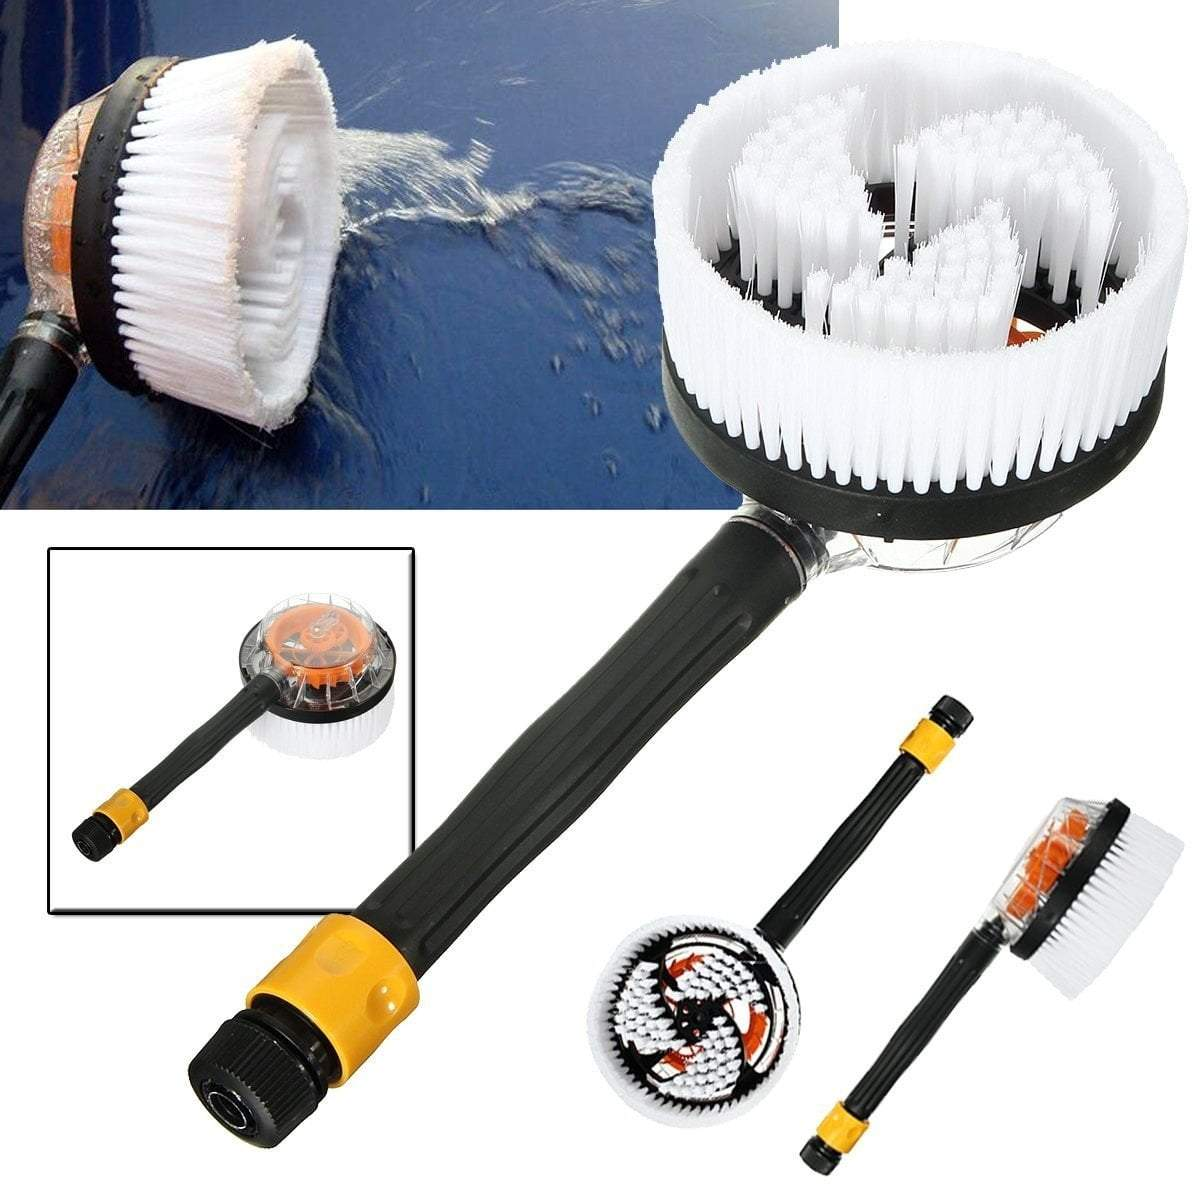 Automatic Rotating Car Wash Brush in 2019 Automatic car